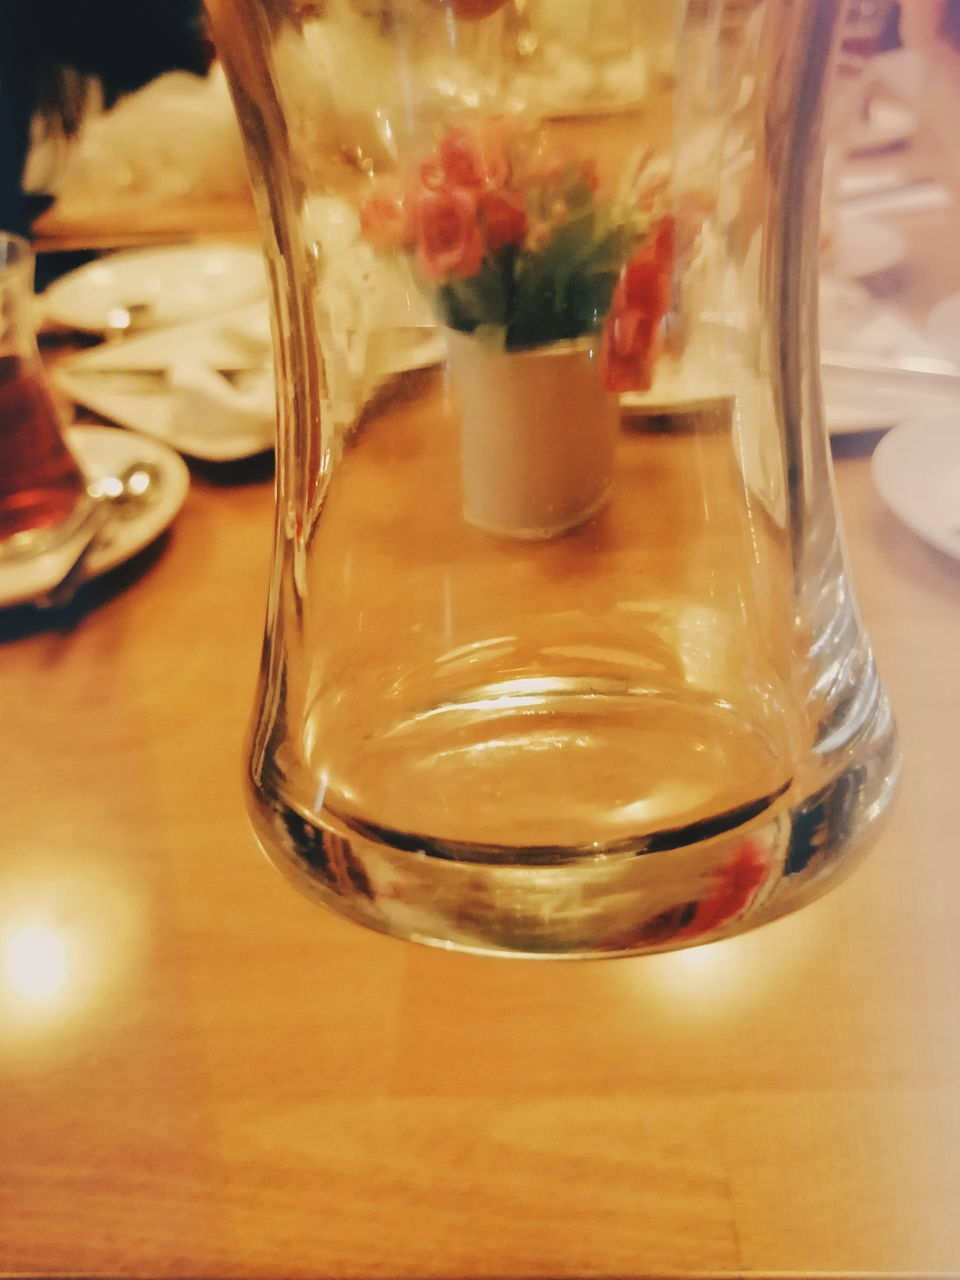 CLOSE-UP OF GLASS OF JUICE